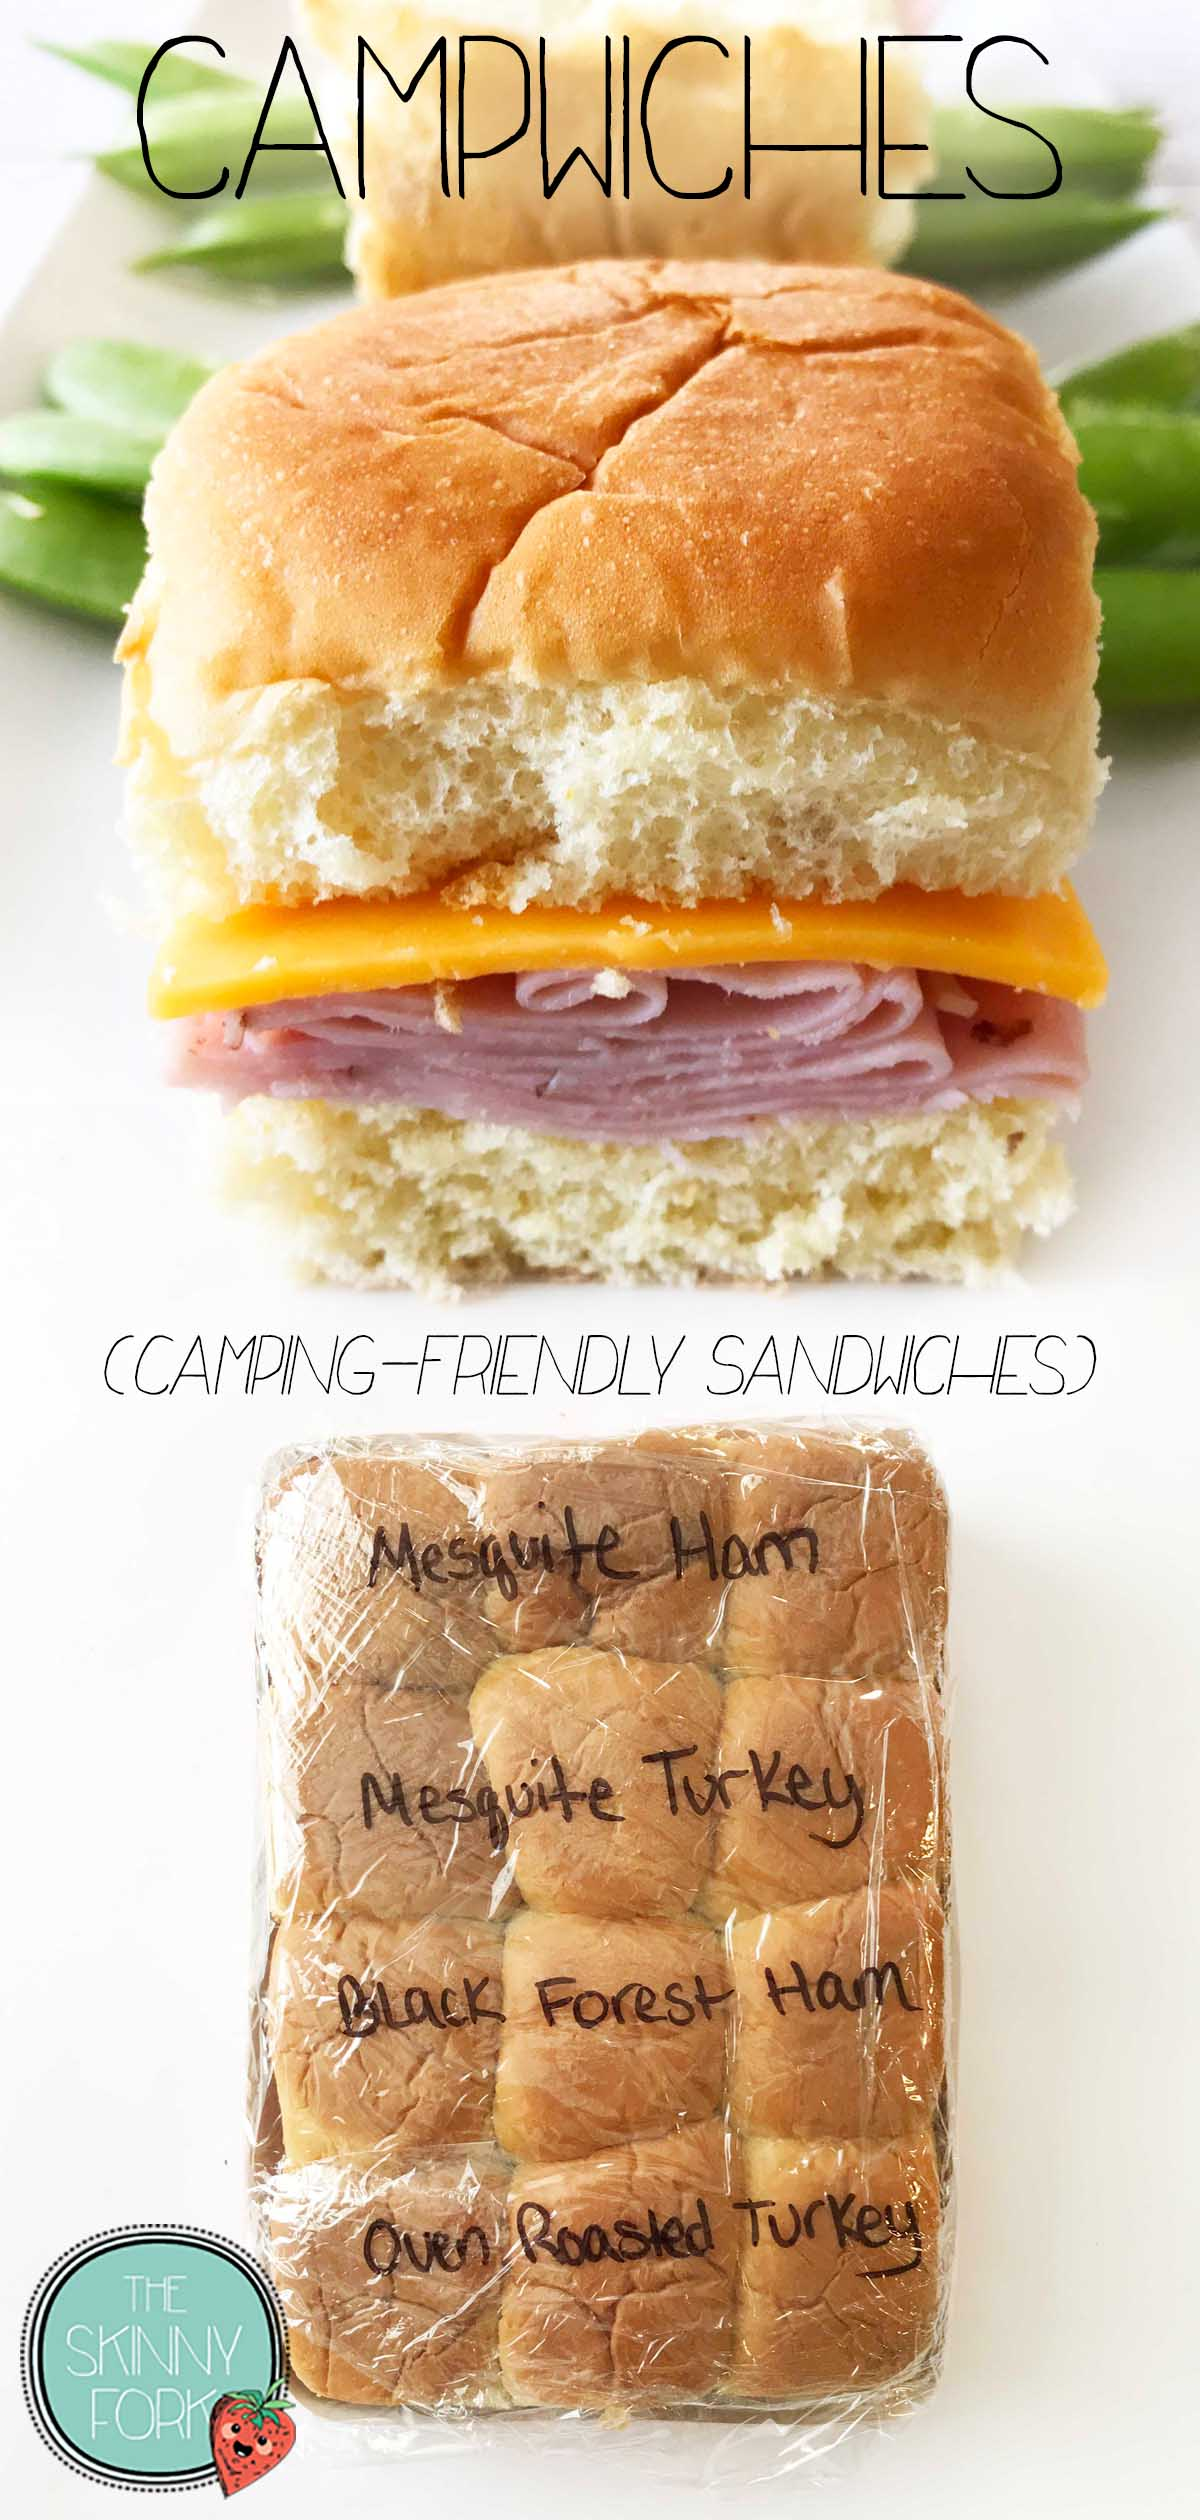 campwiches-pin.jpg